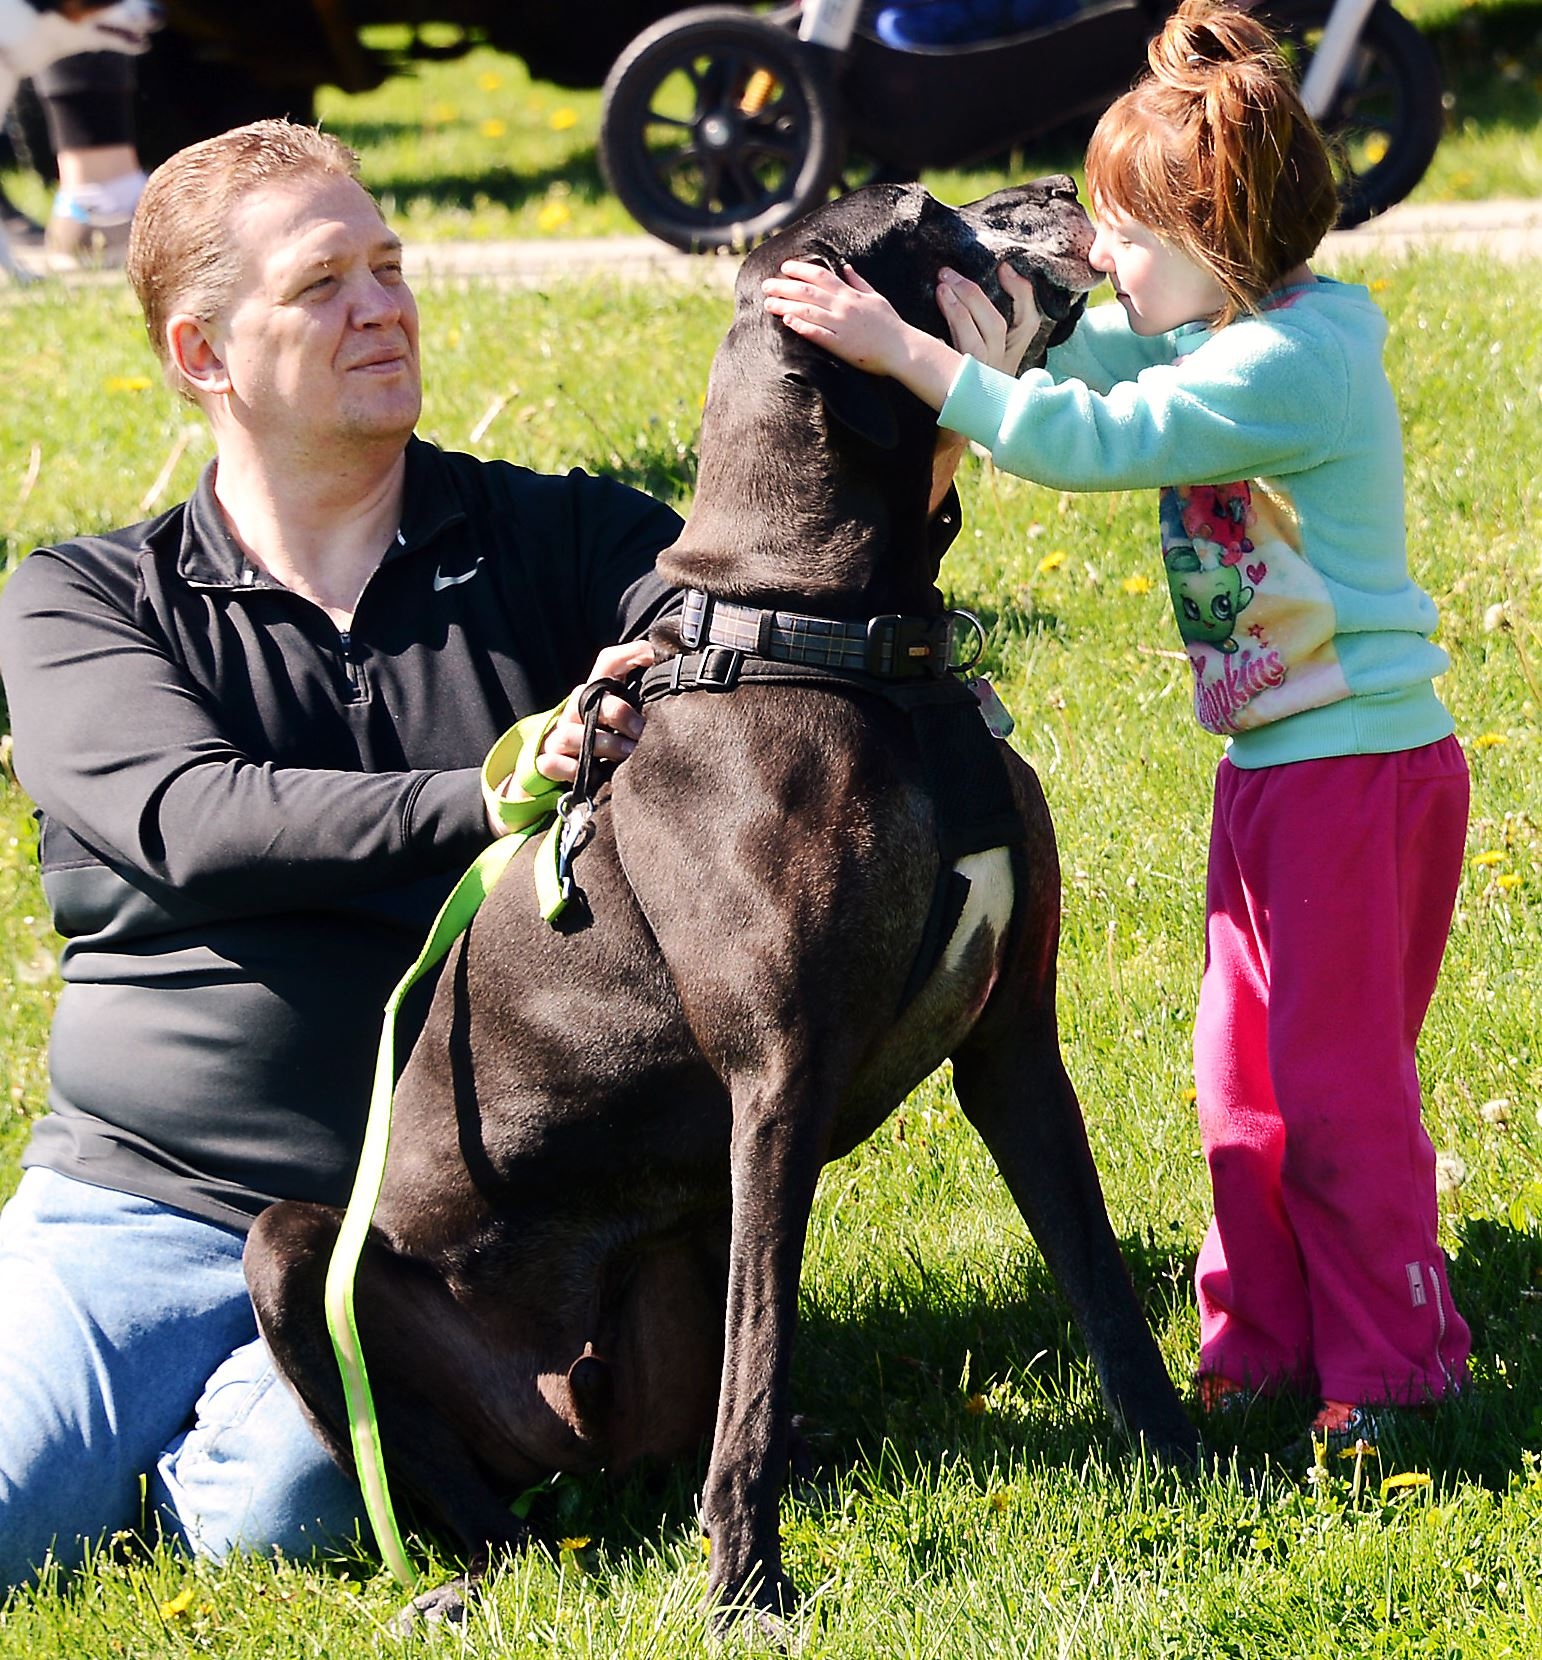 20170423ng-Petwalk3-2 Russ Stroschein of Turtle Creek looks on as Bo, his 10-year-old Great Dane, gets a hug and a kiss from Bentley Paustenbaugh of Sarver during the Friends of Jupiter Walk in Boyce Park.